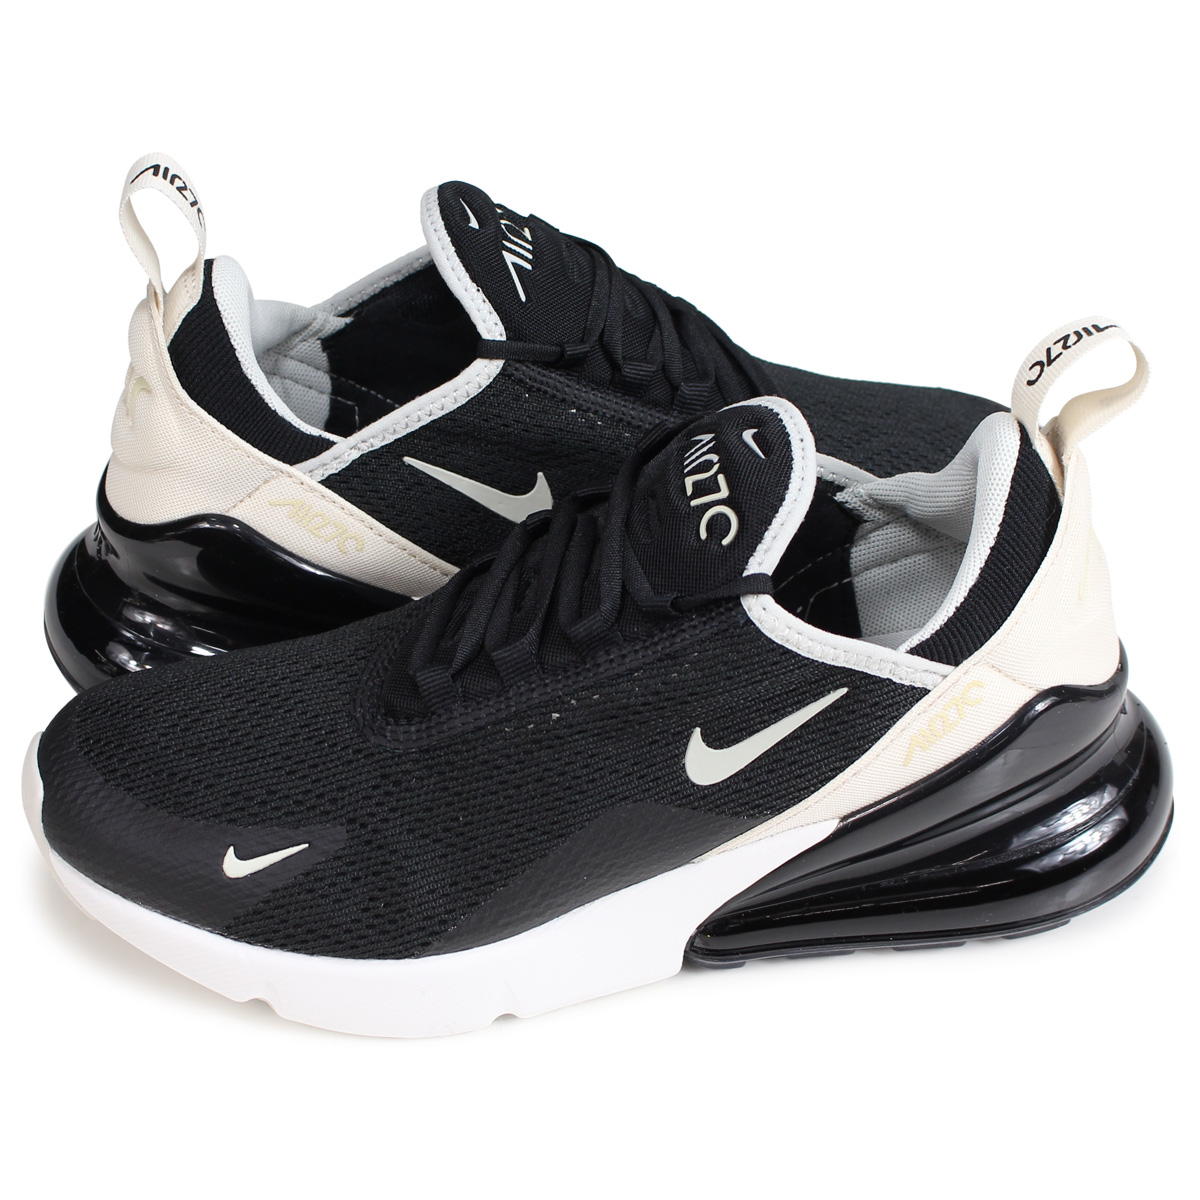 get cheap 436ce 9c9a3 Nike NIKE Air Max 270 sneakers Lady s WMNS AIR MAX 270 black AH6789-010   load planned Shinnyu load in reservation product 2 13 containing   192